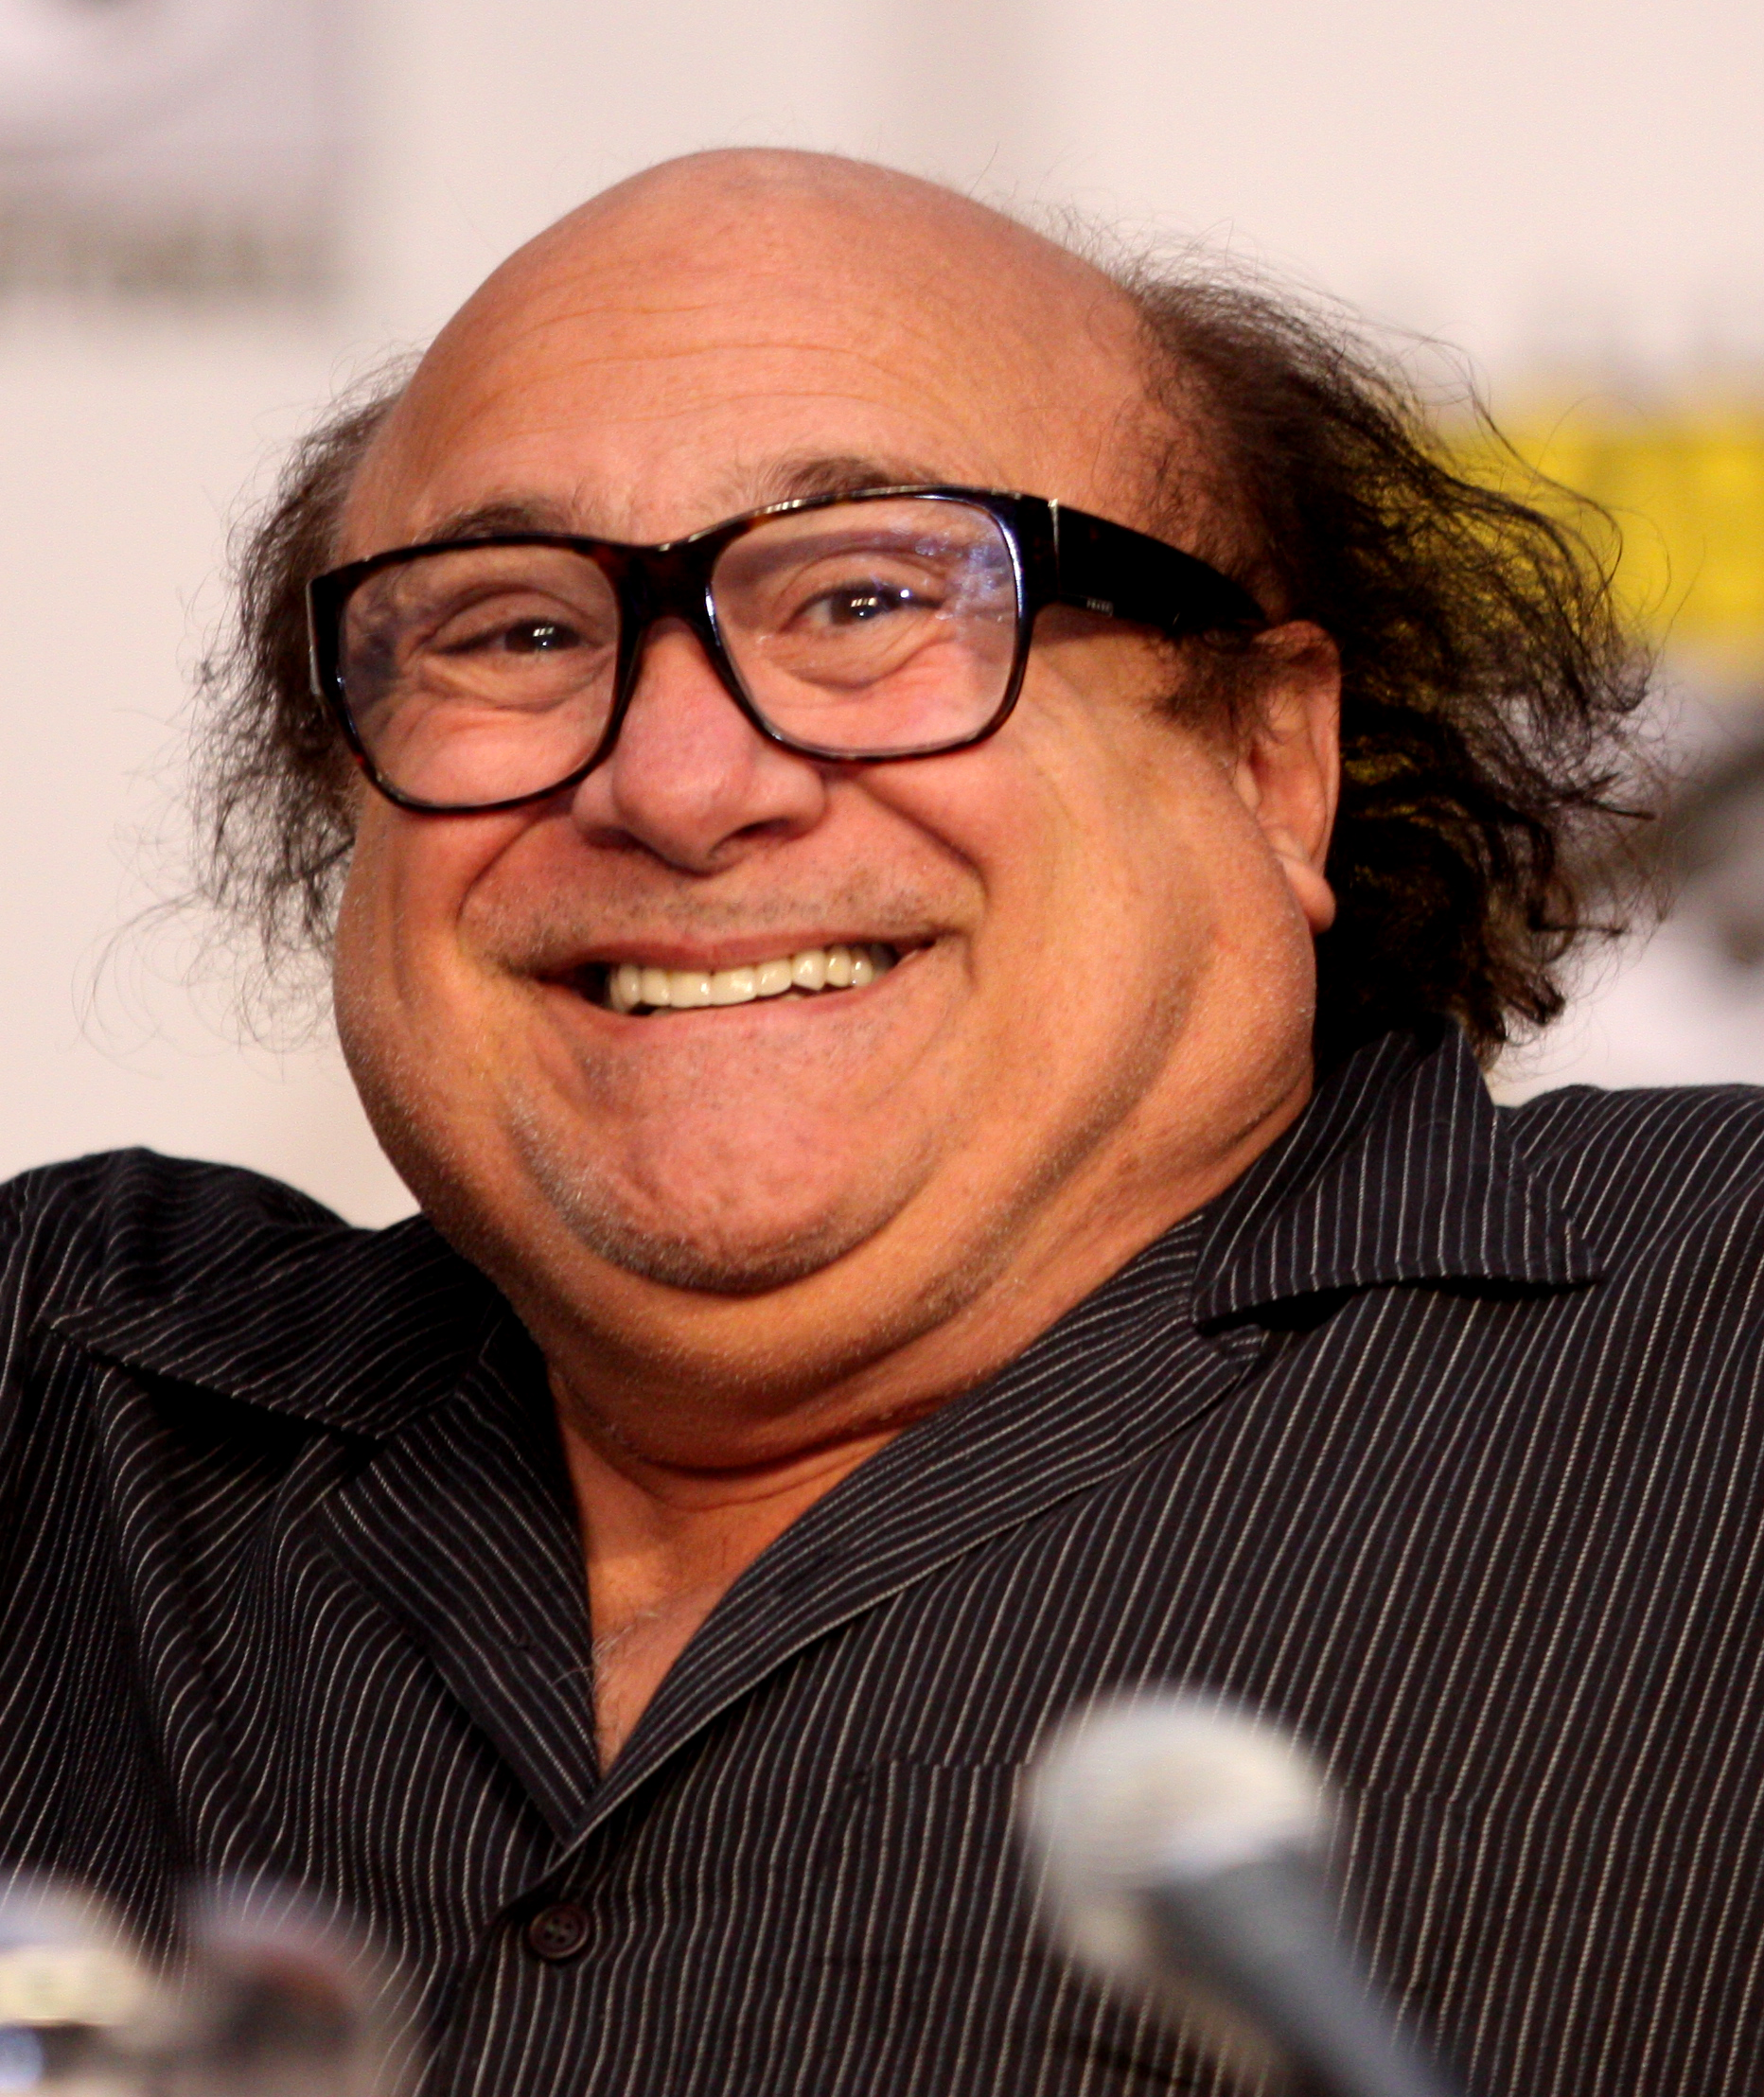 enable images to see this pic of danny devito